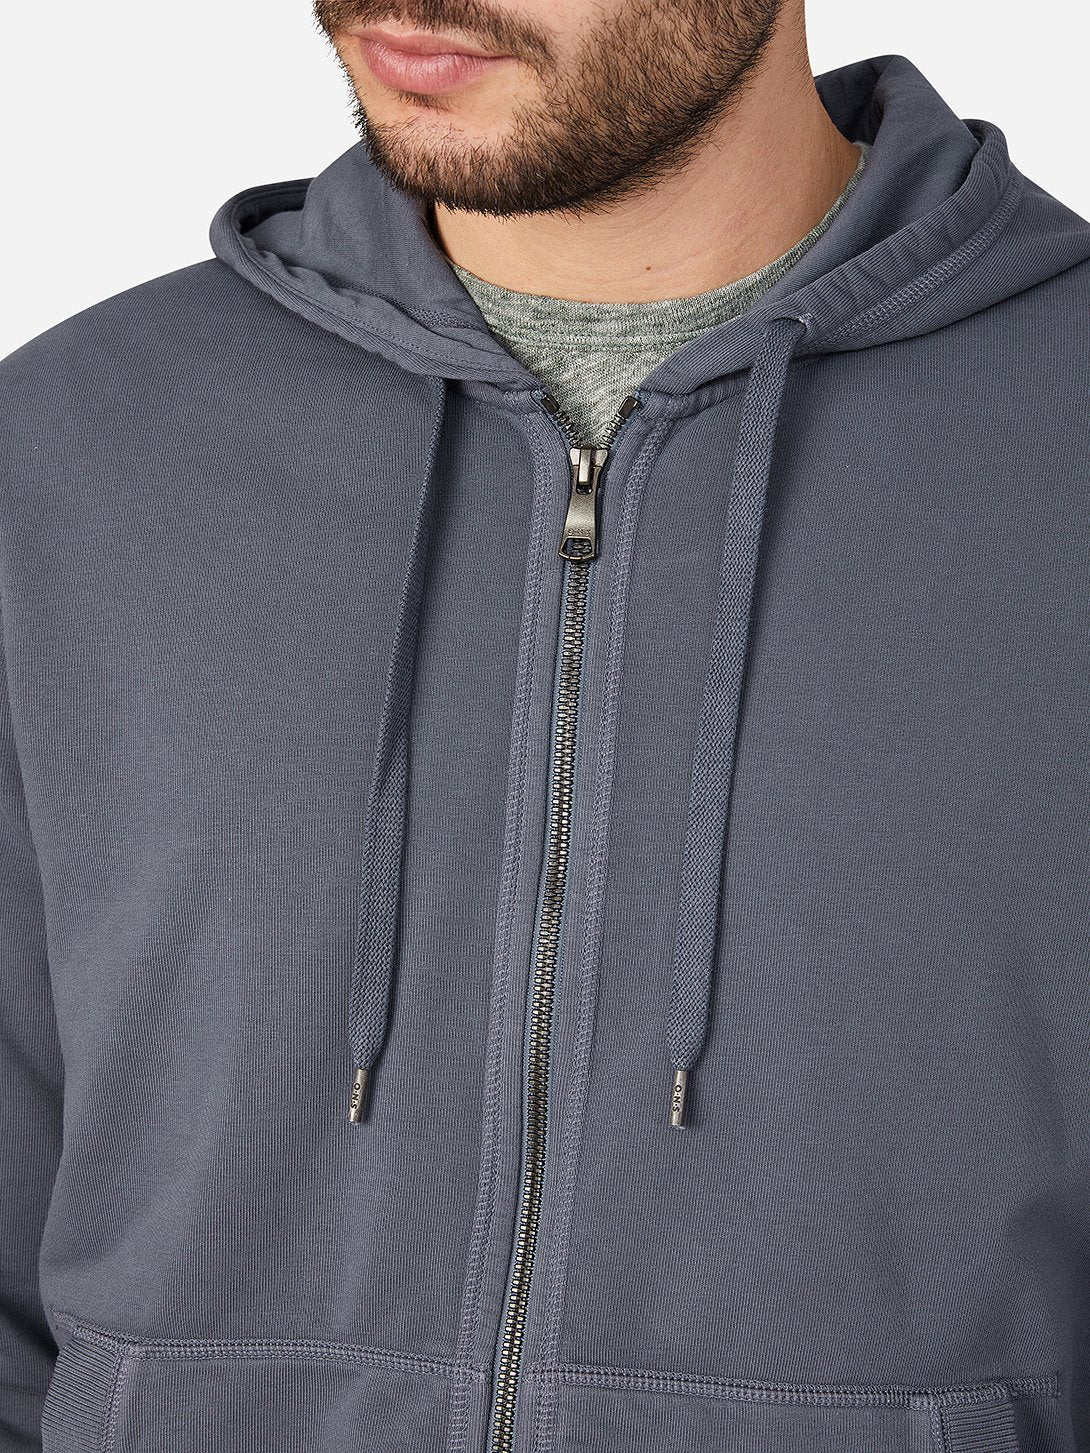 INDIGO zip sweatshirt for men zip hoodie ons clothing black friday deals